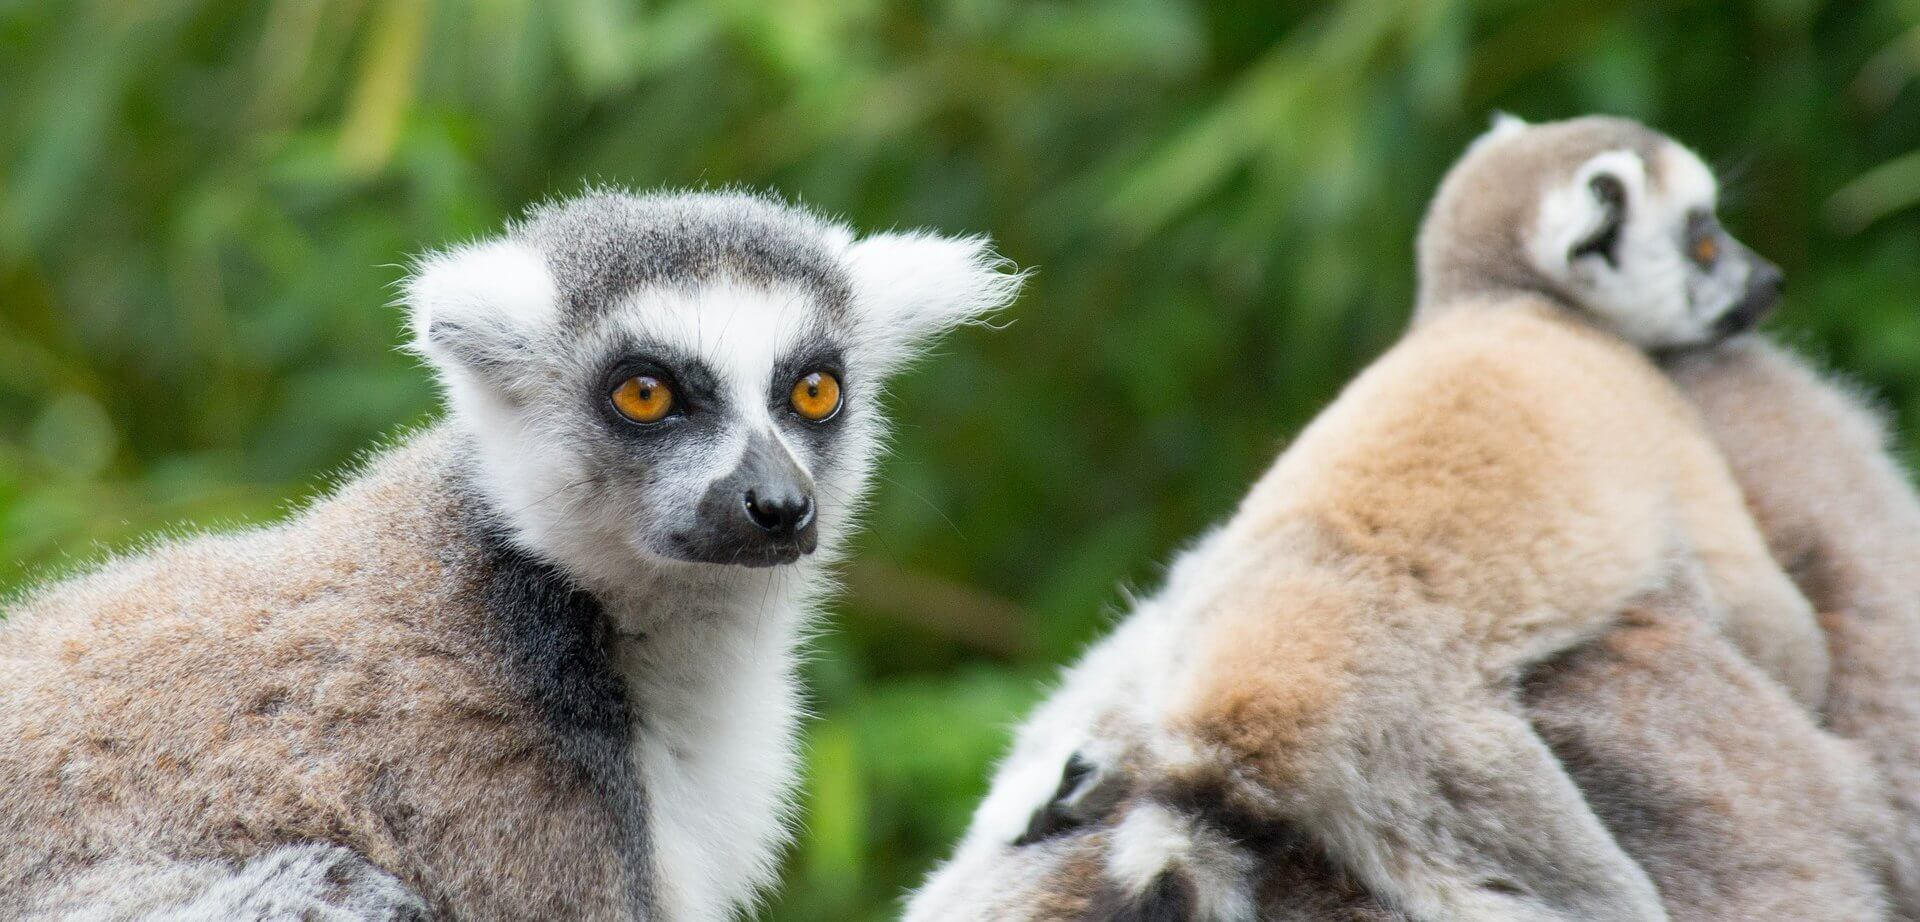 ring-tailed-lemure-4174481_1920PX